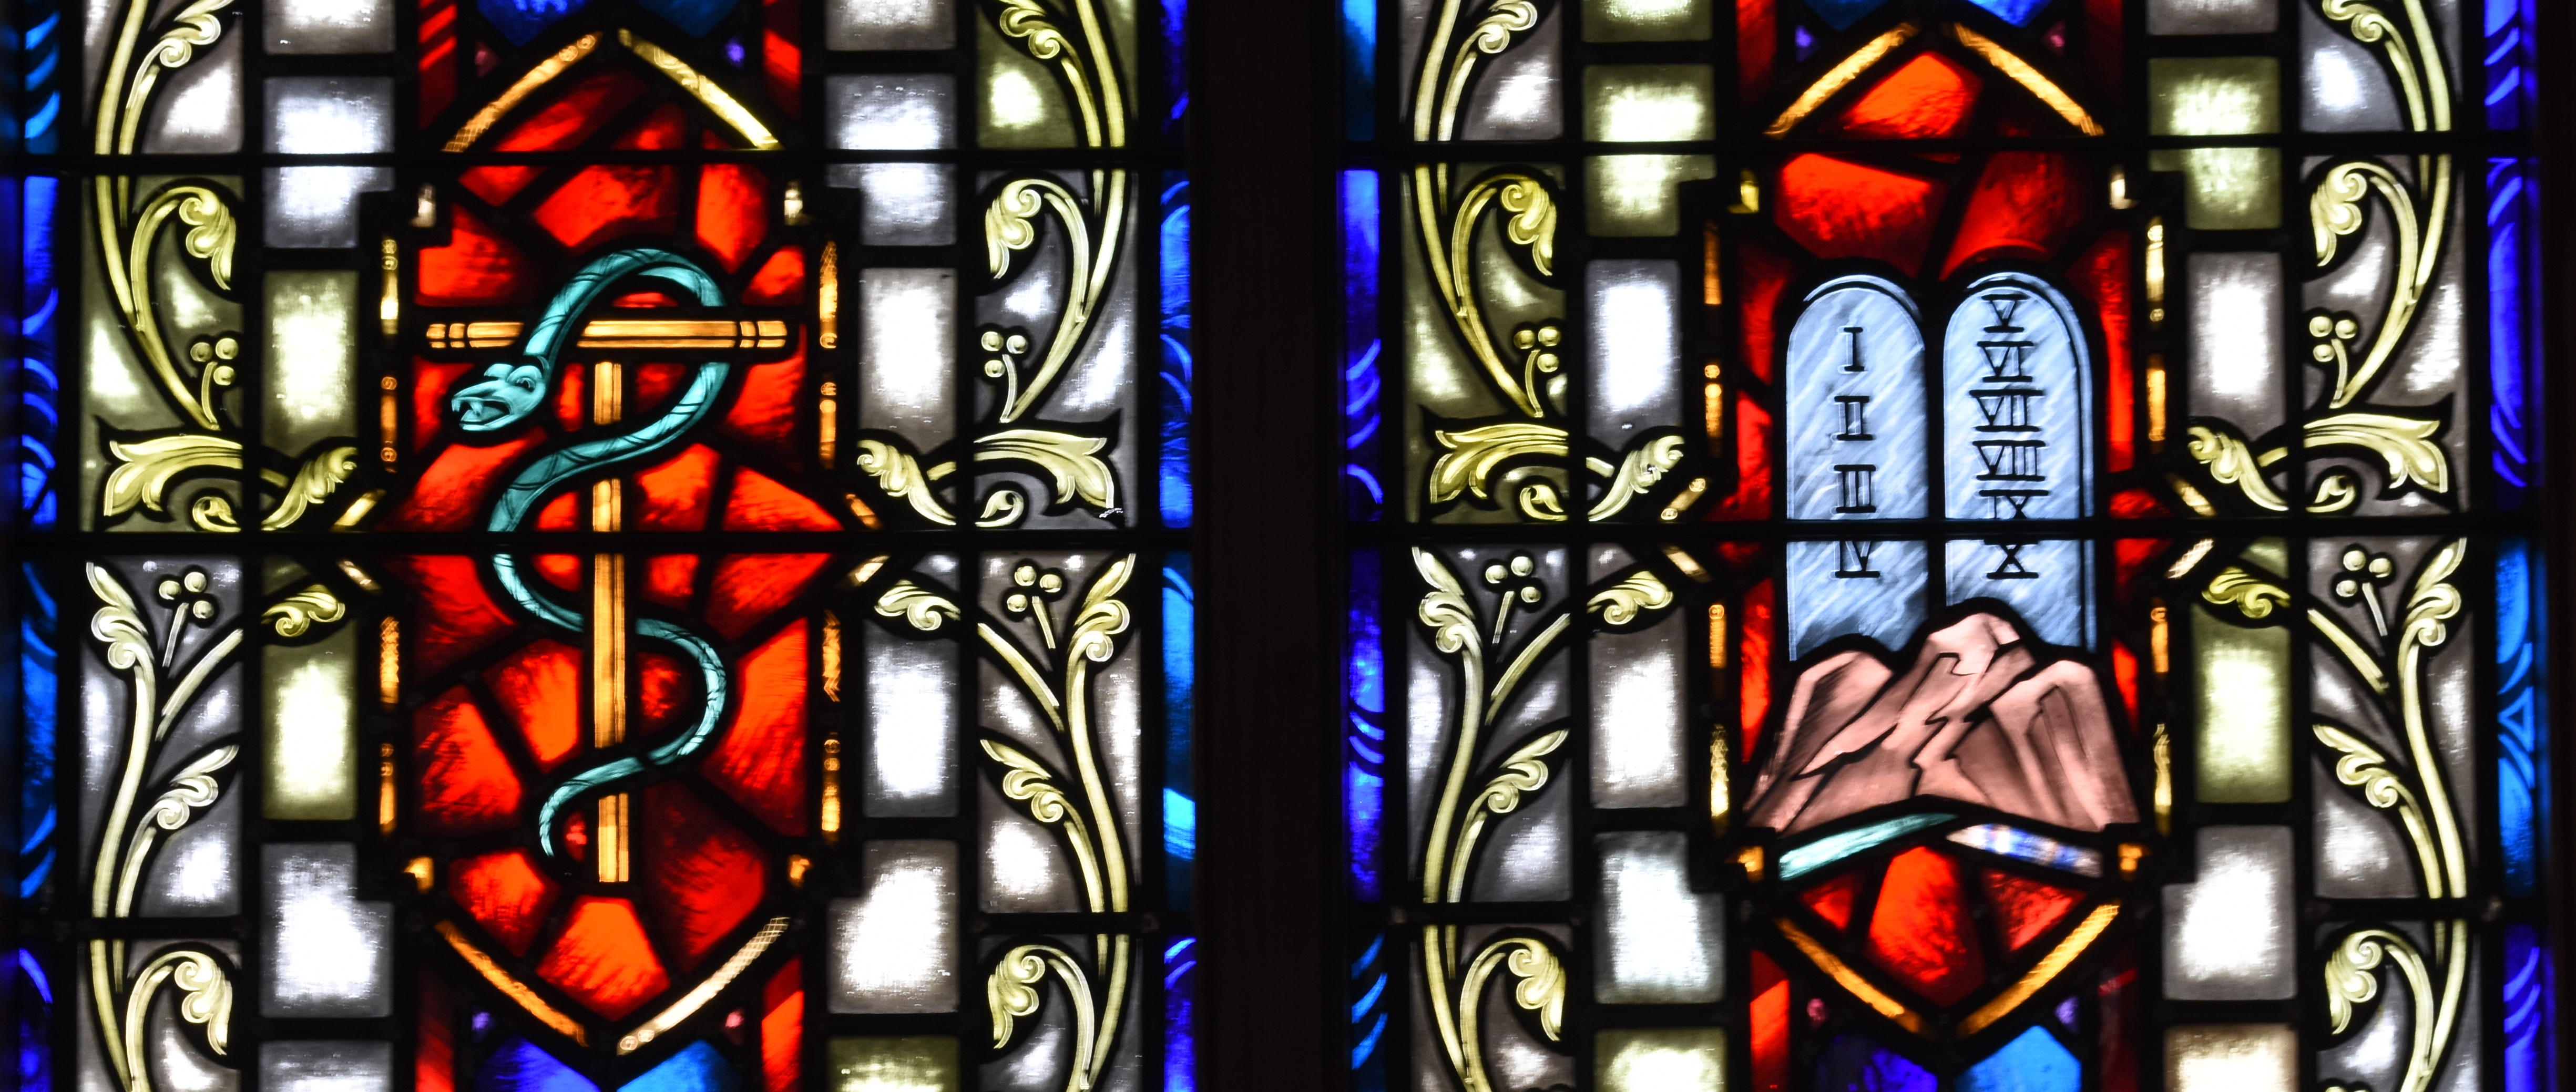 Window 2 detail